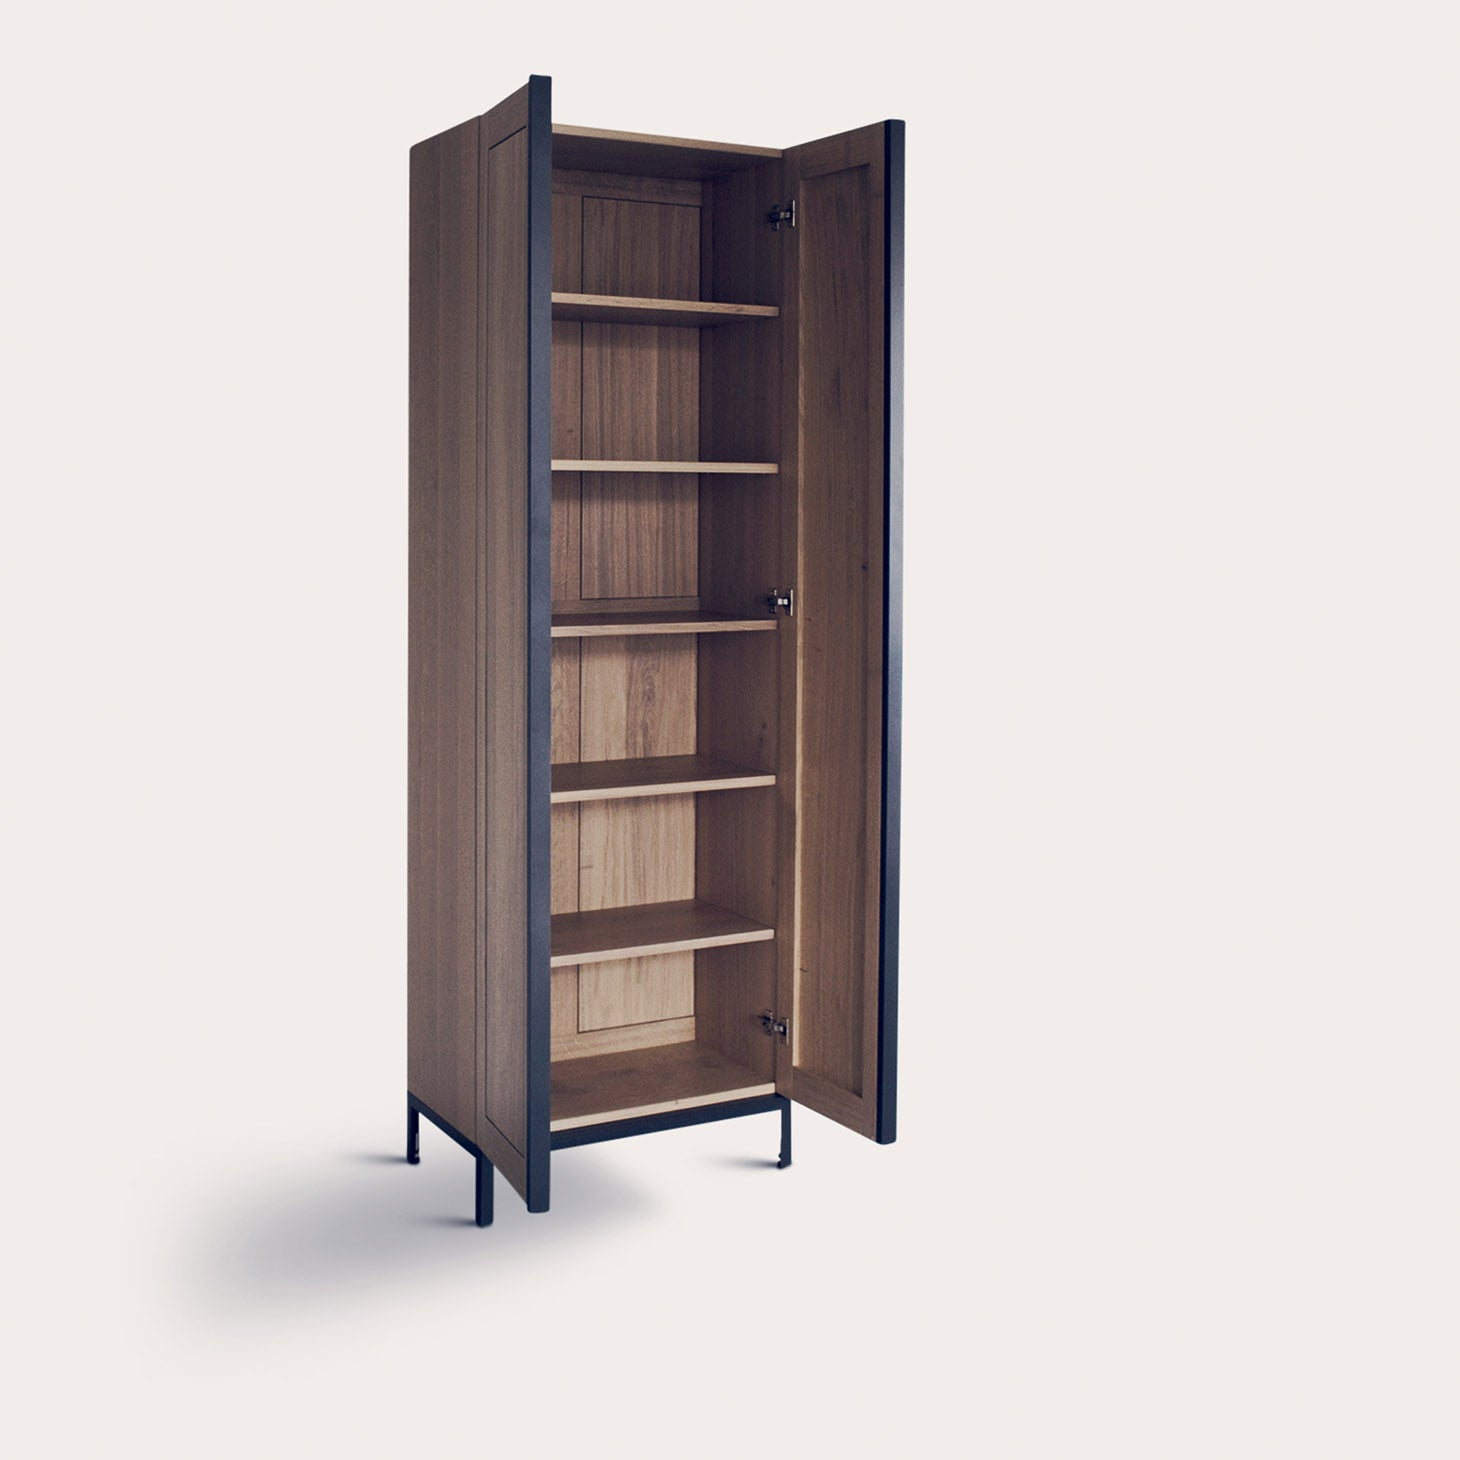 Greep Storage Marlieke Van Rossum Designer Furniture Sku: 416-220-10038